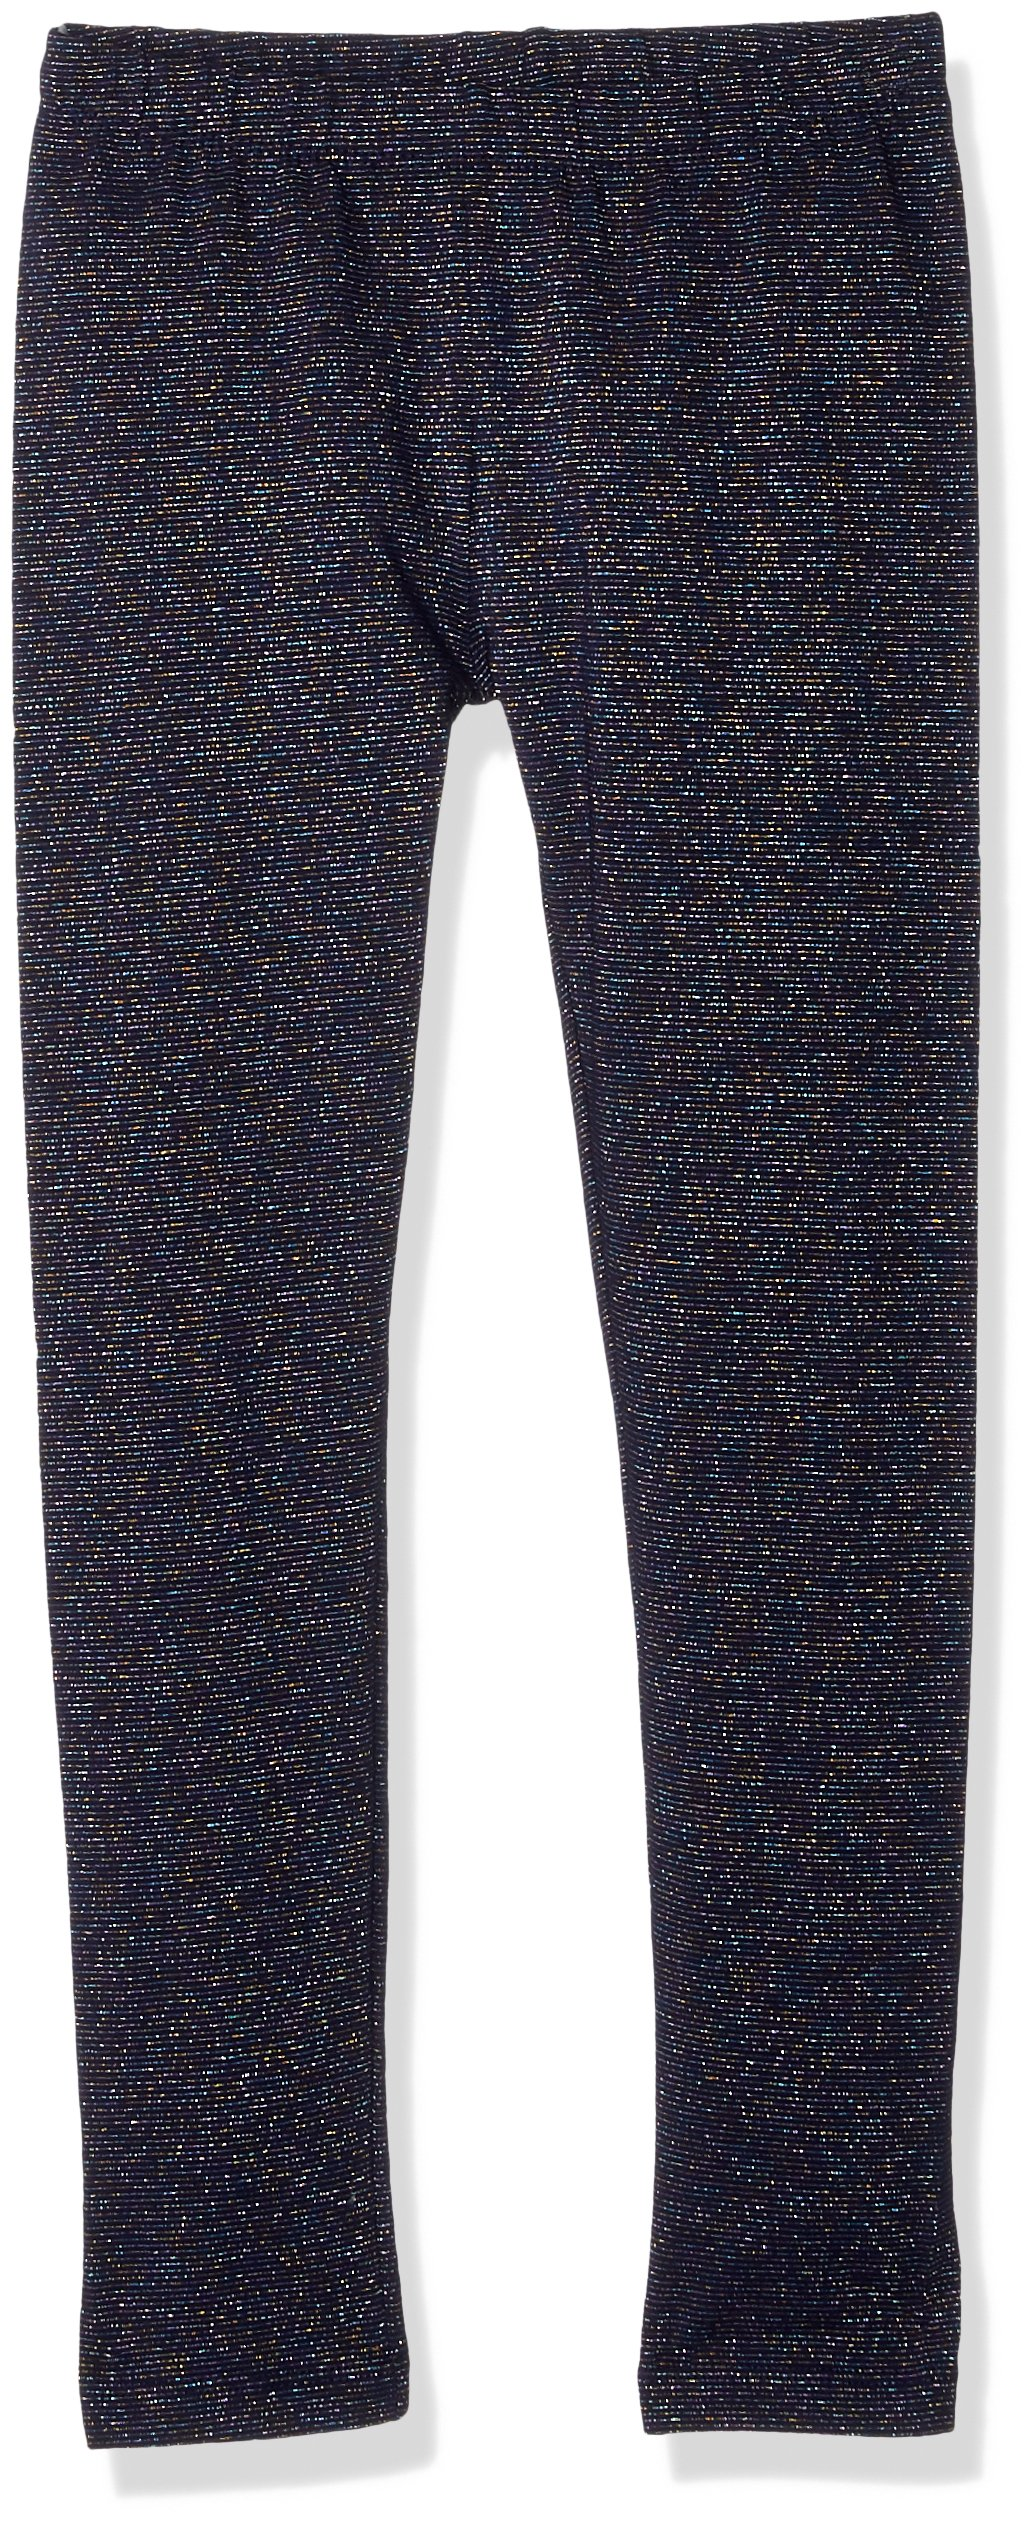 Gymboree Little Girls' Basic Sparkle Legging, Navy Sparkle, M by Gymboree (Image #1)